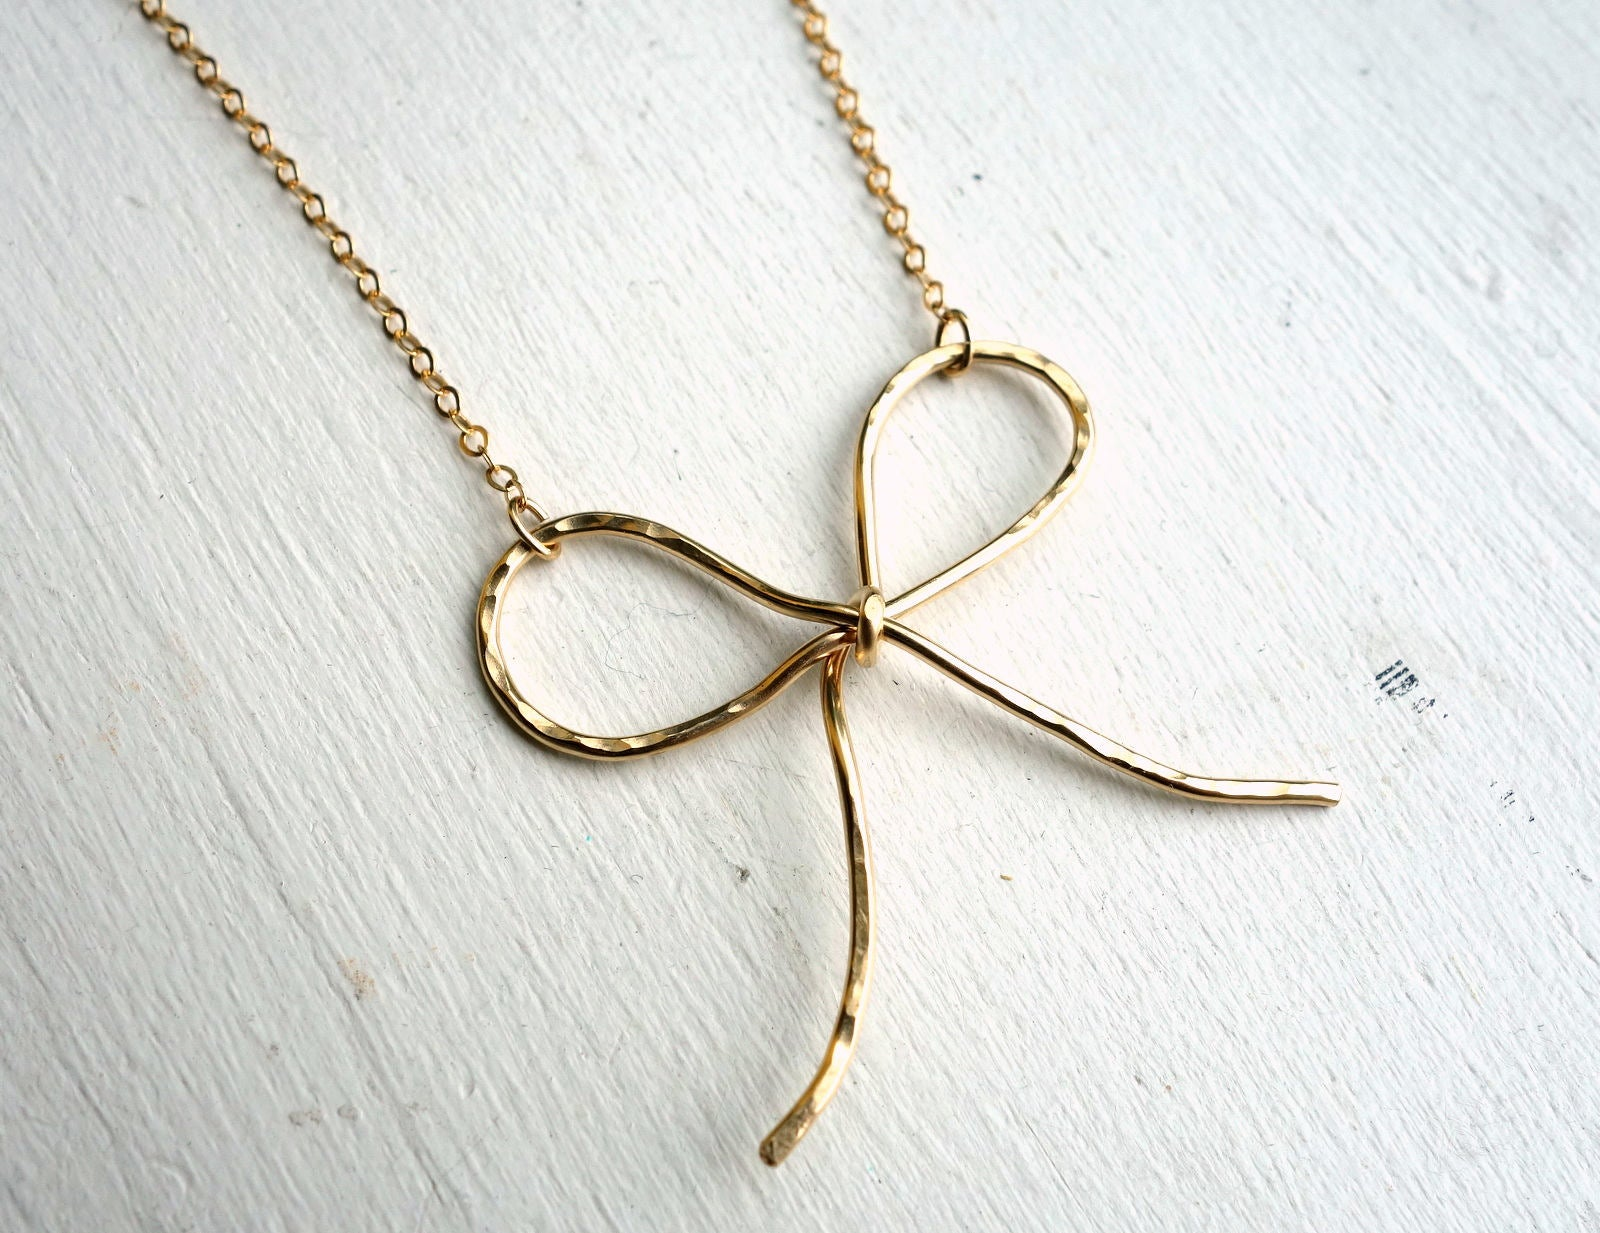 14k Gold Filled Big Bow Necklace Pendant